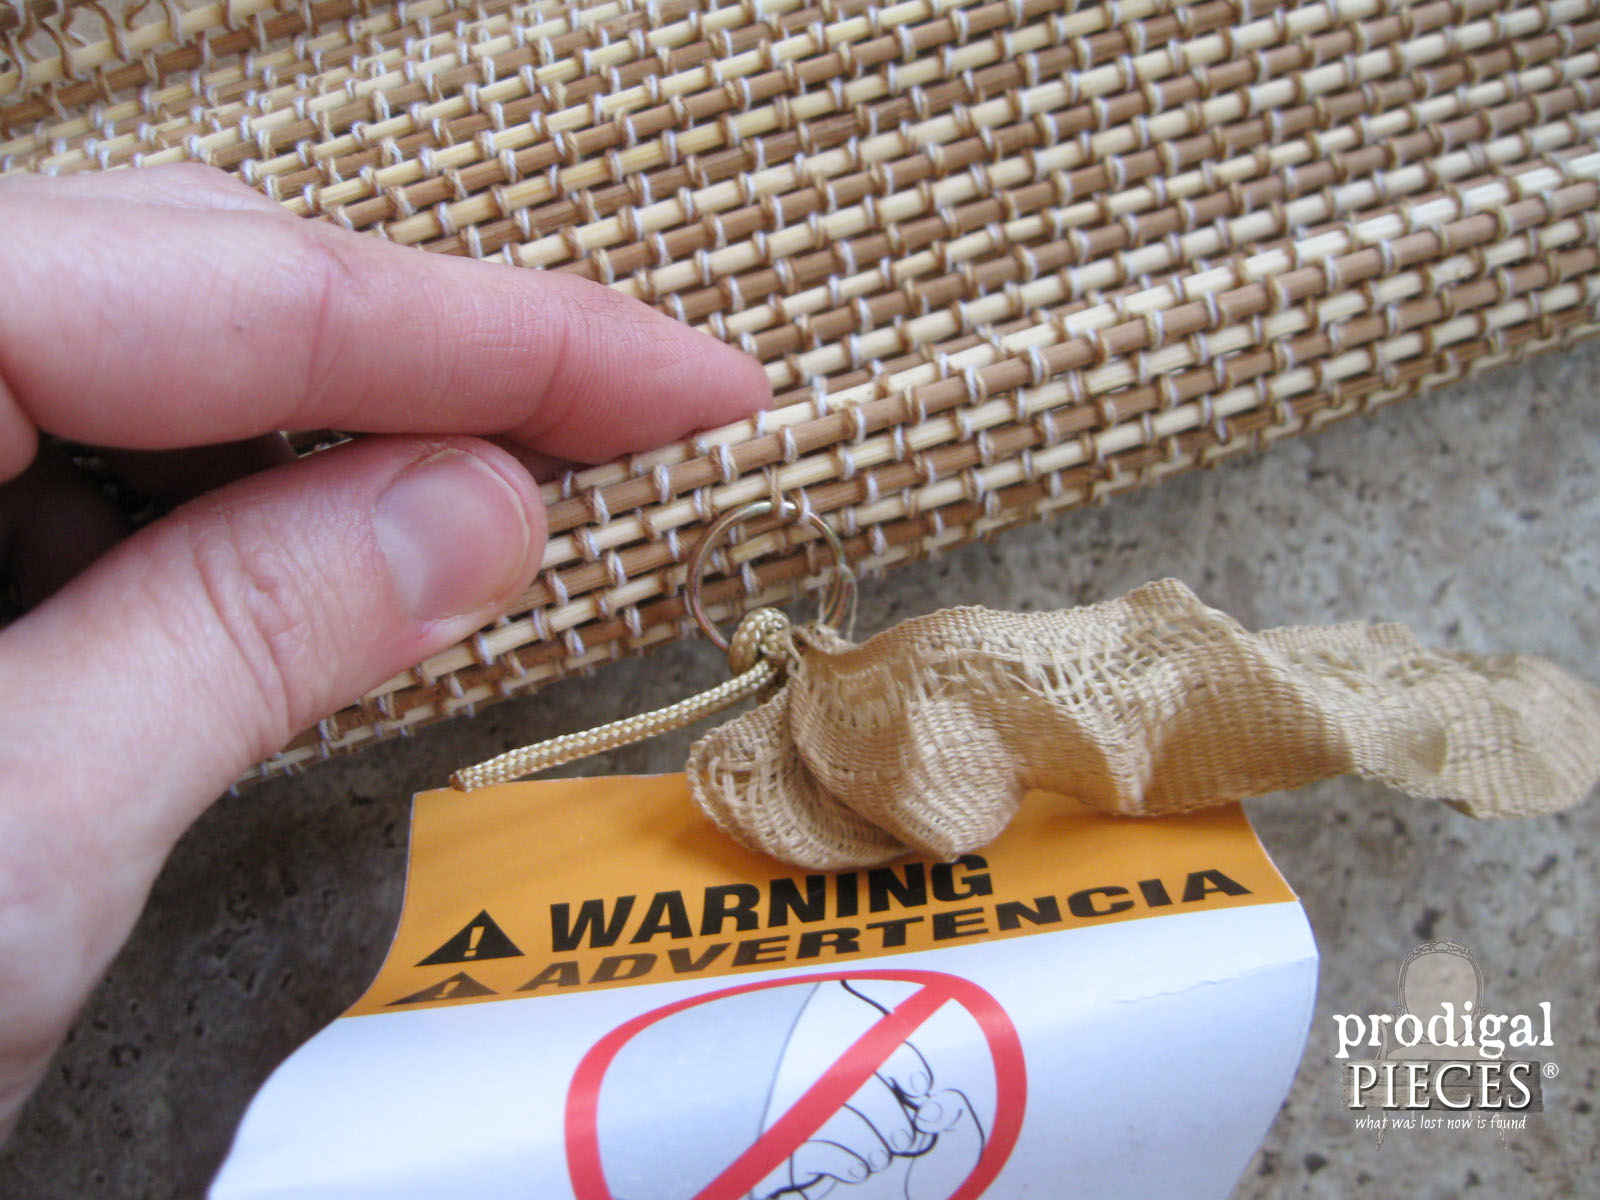 Removing Bamboo Shade Rings | Prodigal Pieces | www.prodigalpieces.com